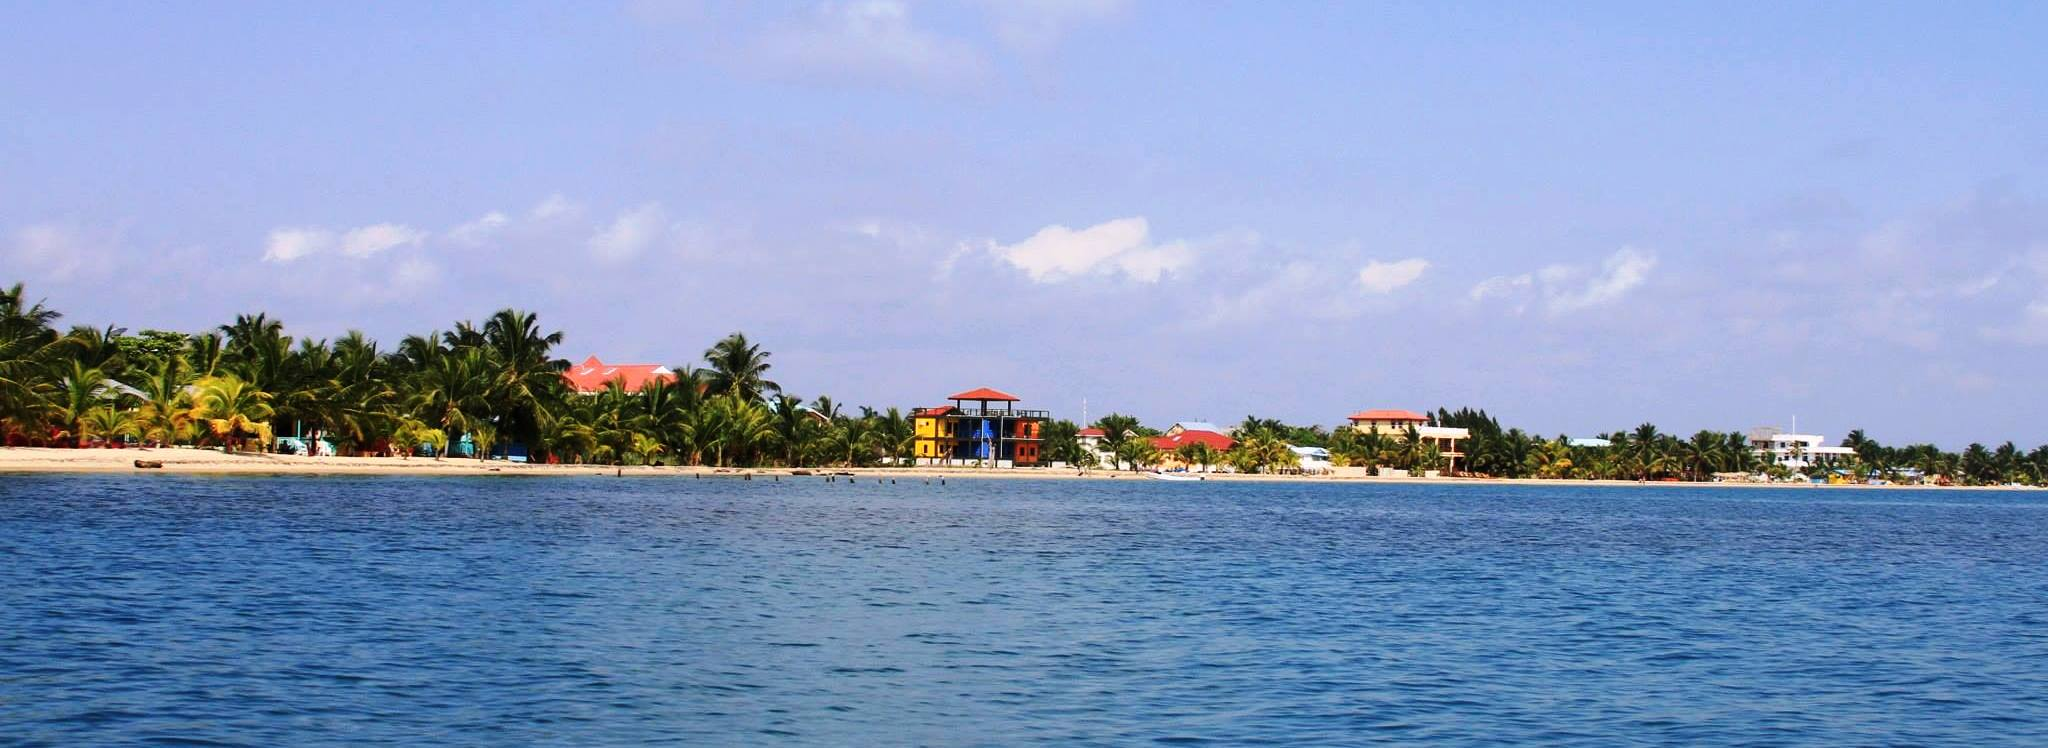 Placencia Village from Caribbean 3 Chabil Mar - Belize Resort